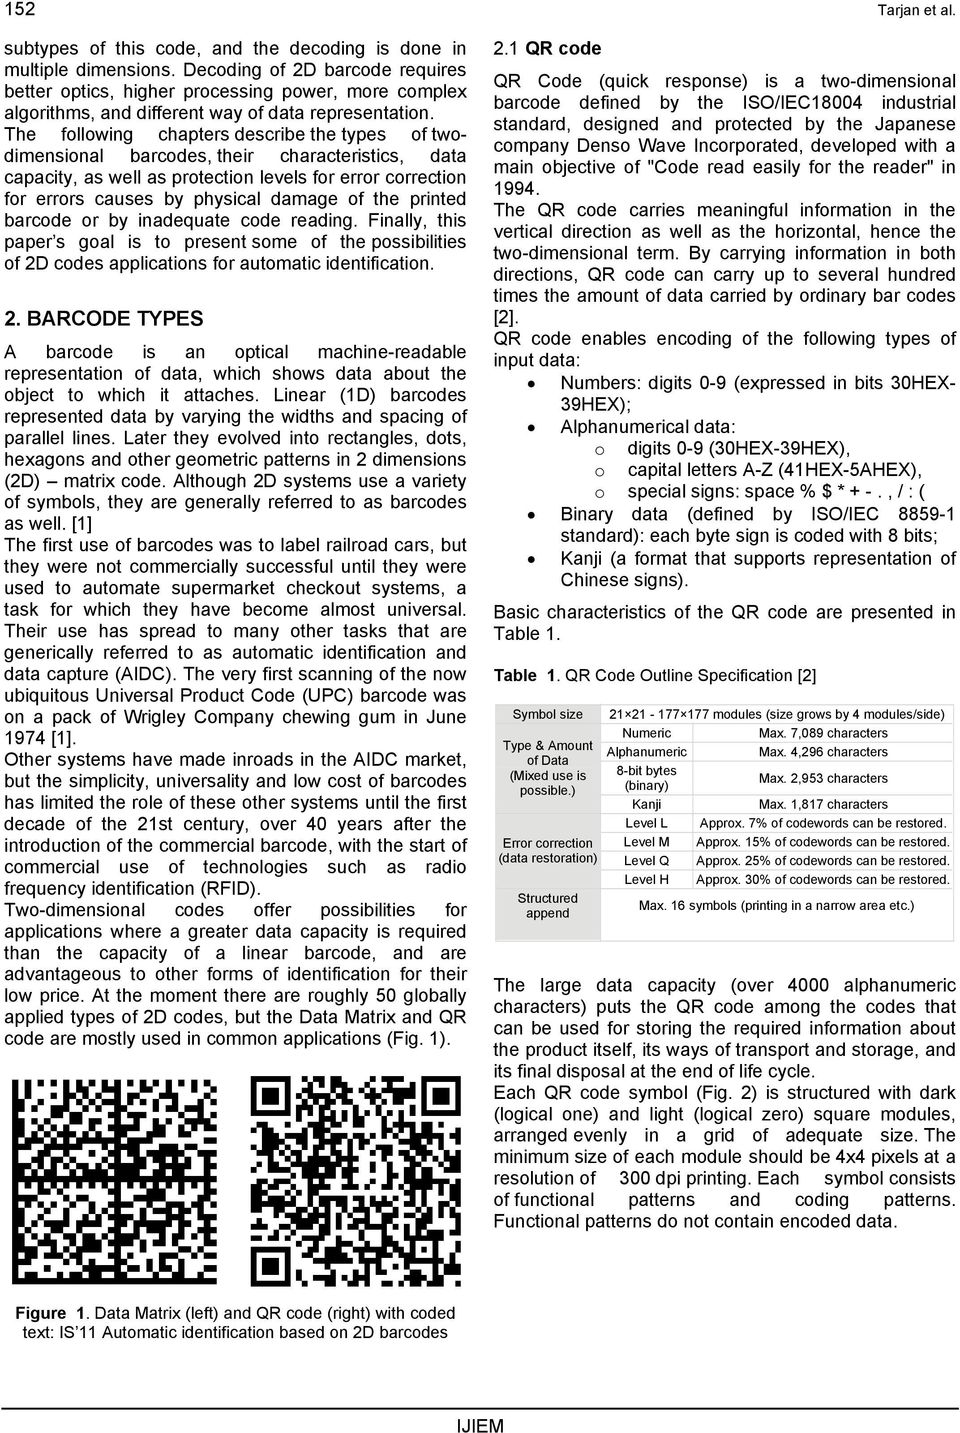 Automatic identification based on 2D barcodes - PDF